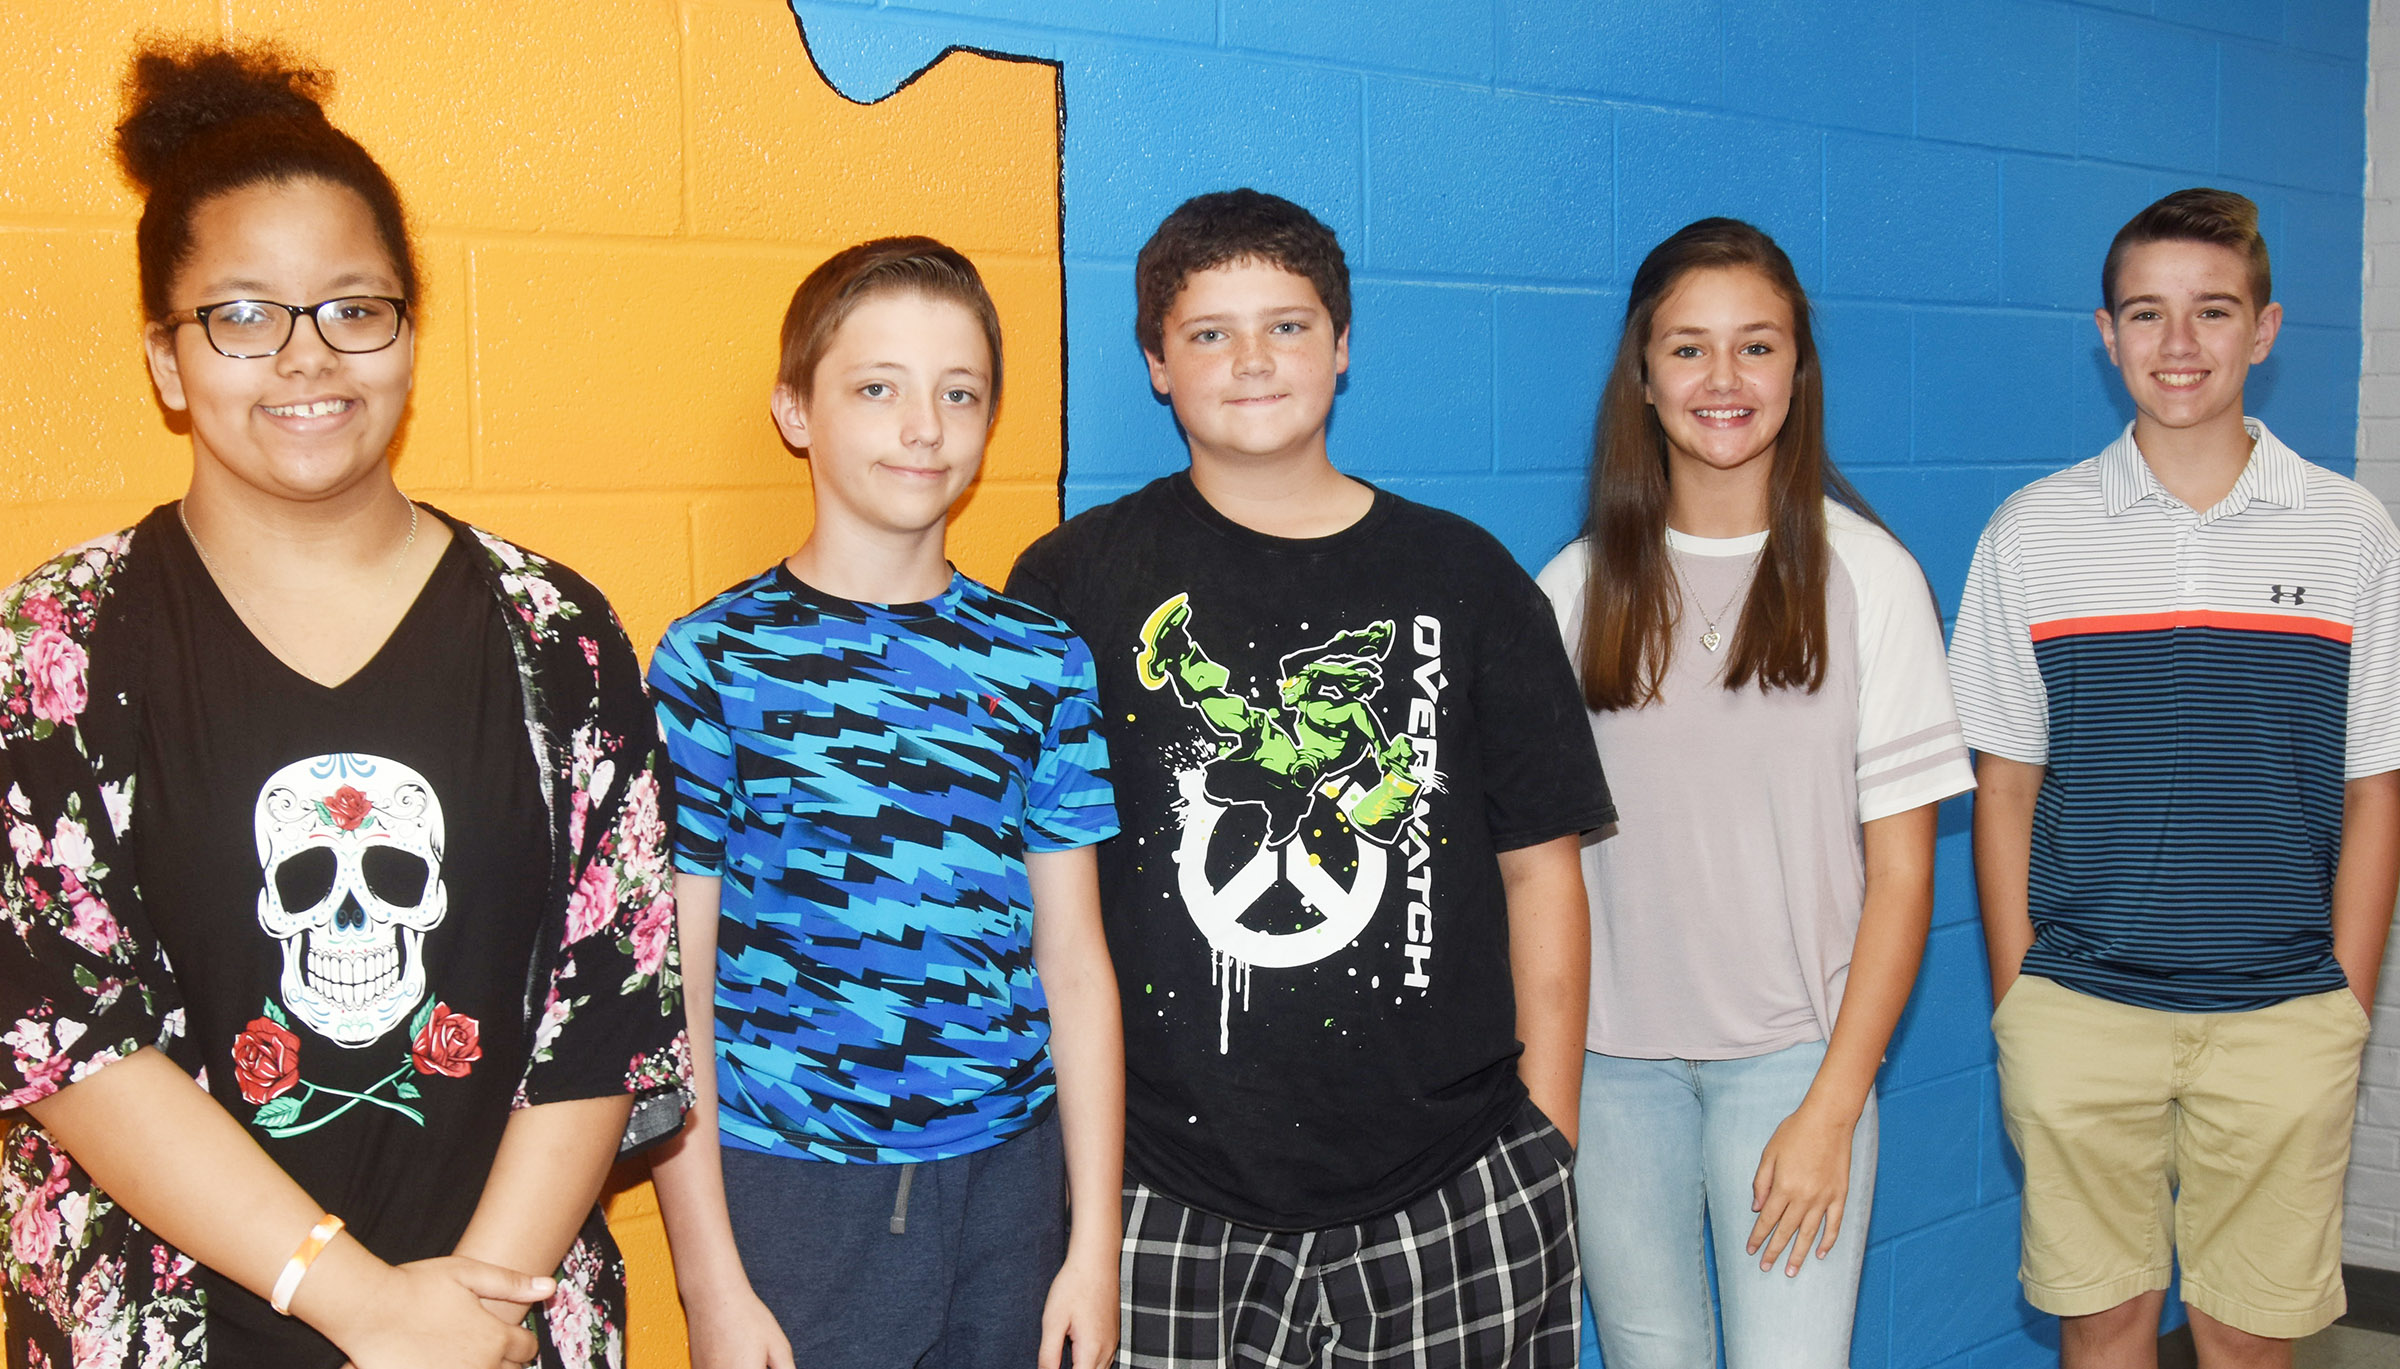 CMS Exceeding Eagles for the week of Sept. 10 are, from left, seventh-grader Kiara Graves, sixth-grader Jaxon Garrett, seventh-grader Johnathon Foster and eighth-graders Haylee Allen and Bryce Newton. Absent from the photo is sixth-grader Mellany Parker.